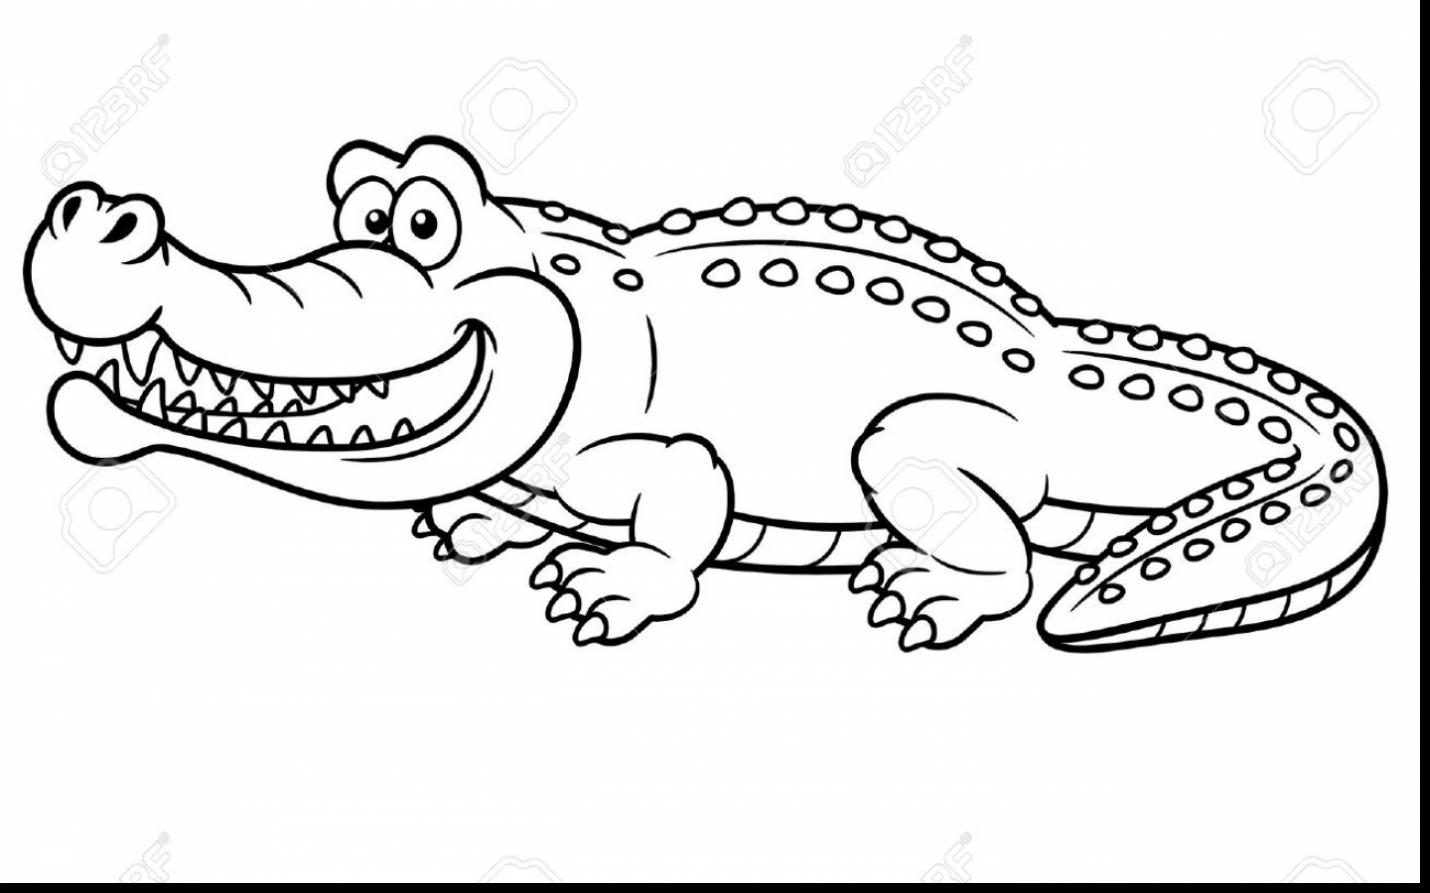 Alligator Drawing Outline at GetDrawings.com | Free for ...